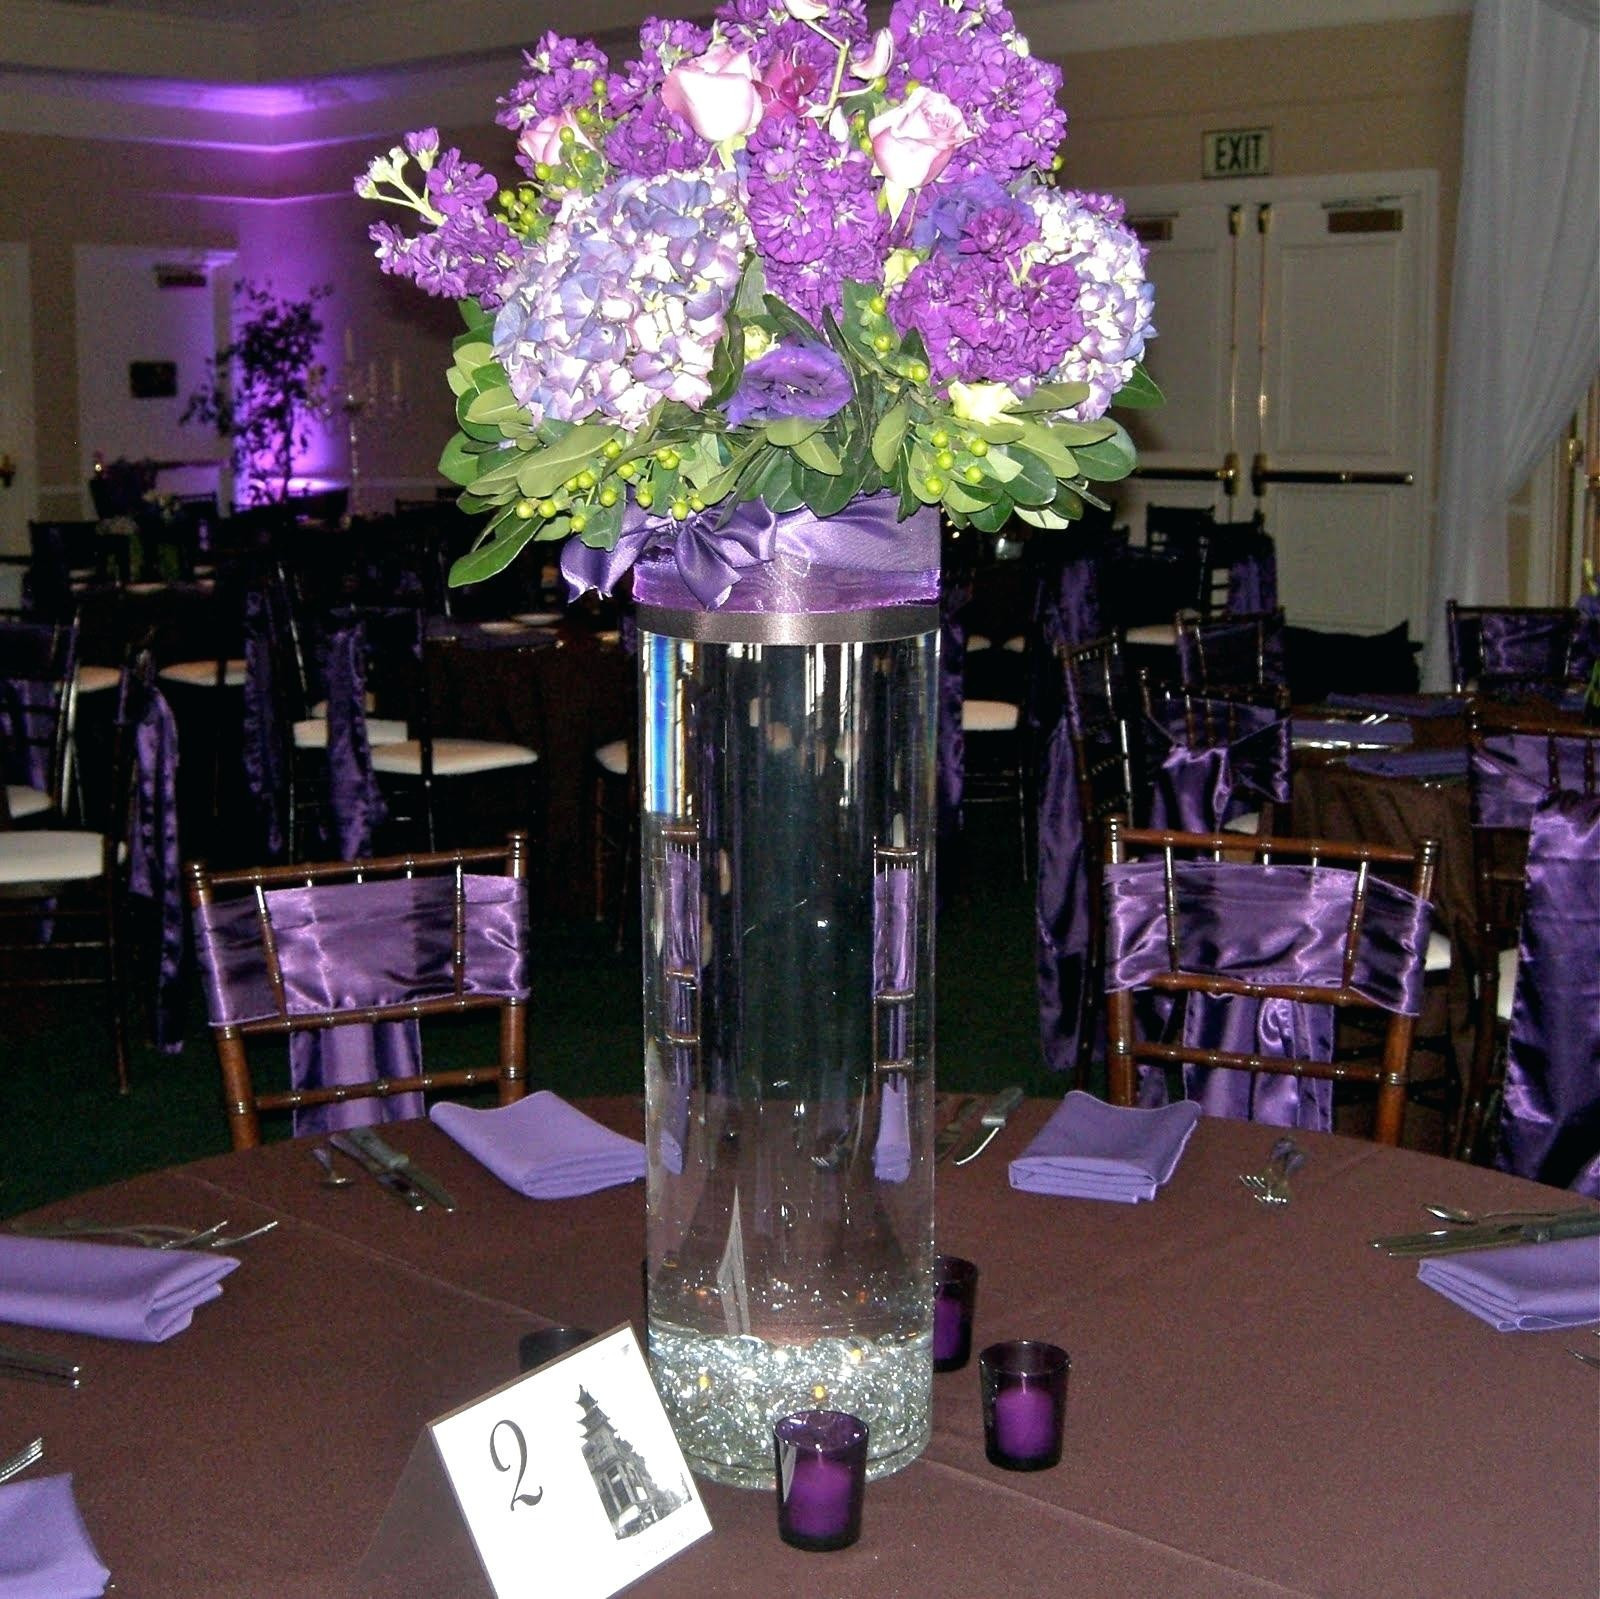 cheap flower vases for weddings of decorating ideas for tall vases awesome h vases giant floor vase i throughout decorating ideas for tall vases lovely h vases cheap tall for centerpieces how to decorate a